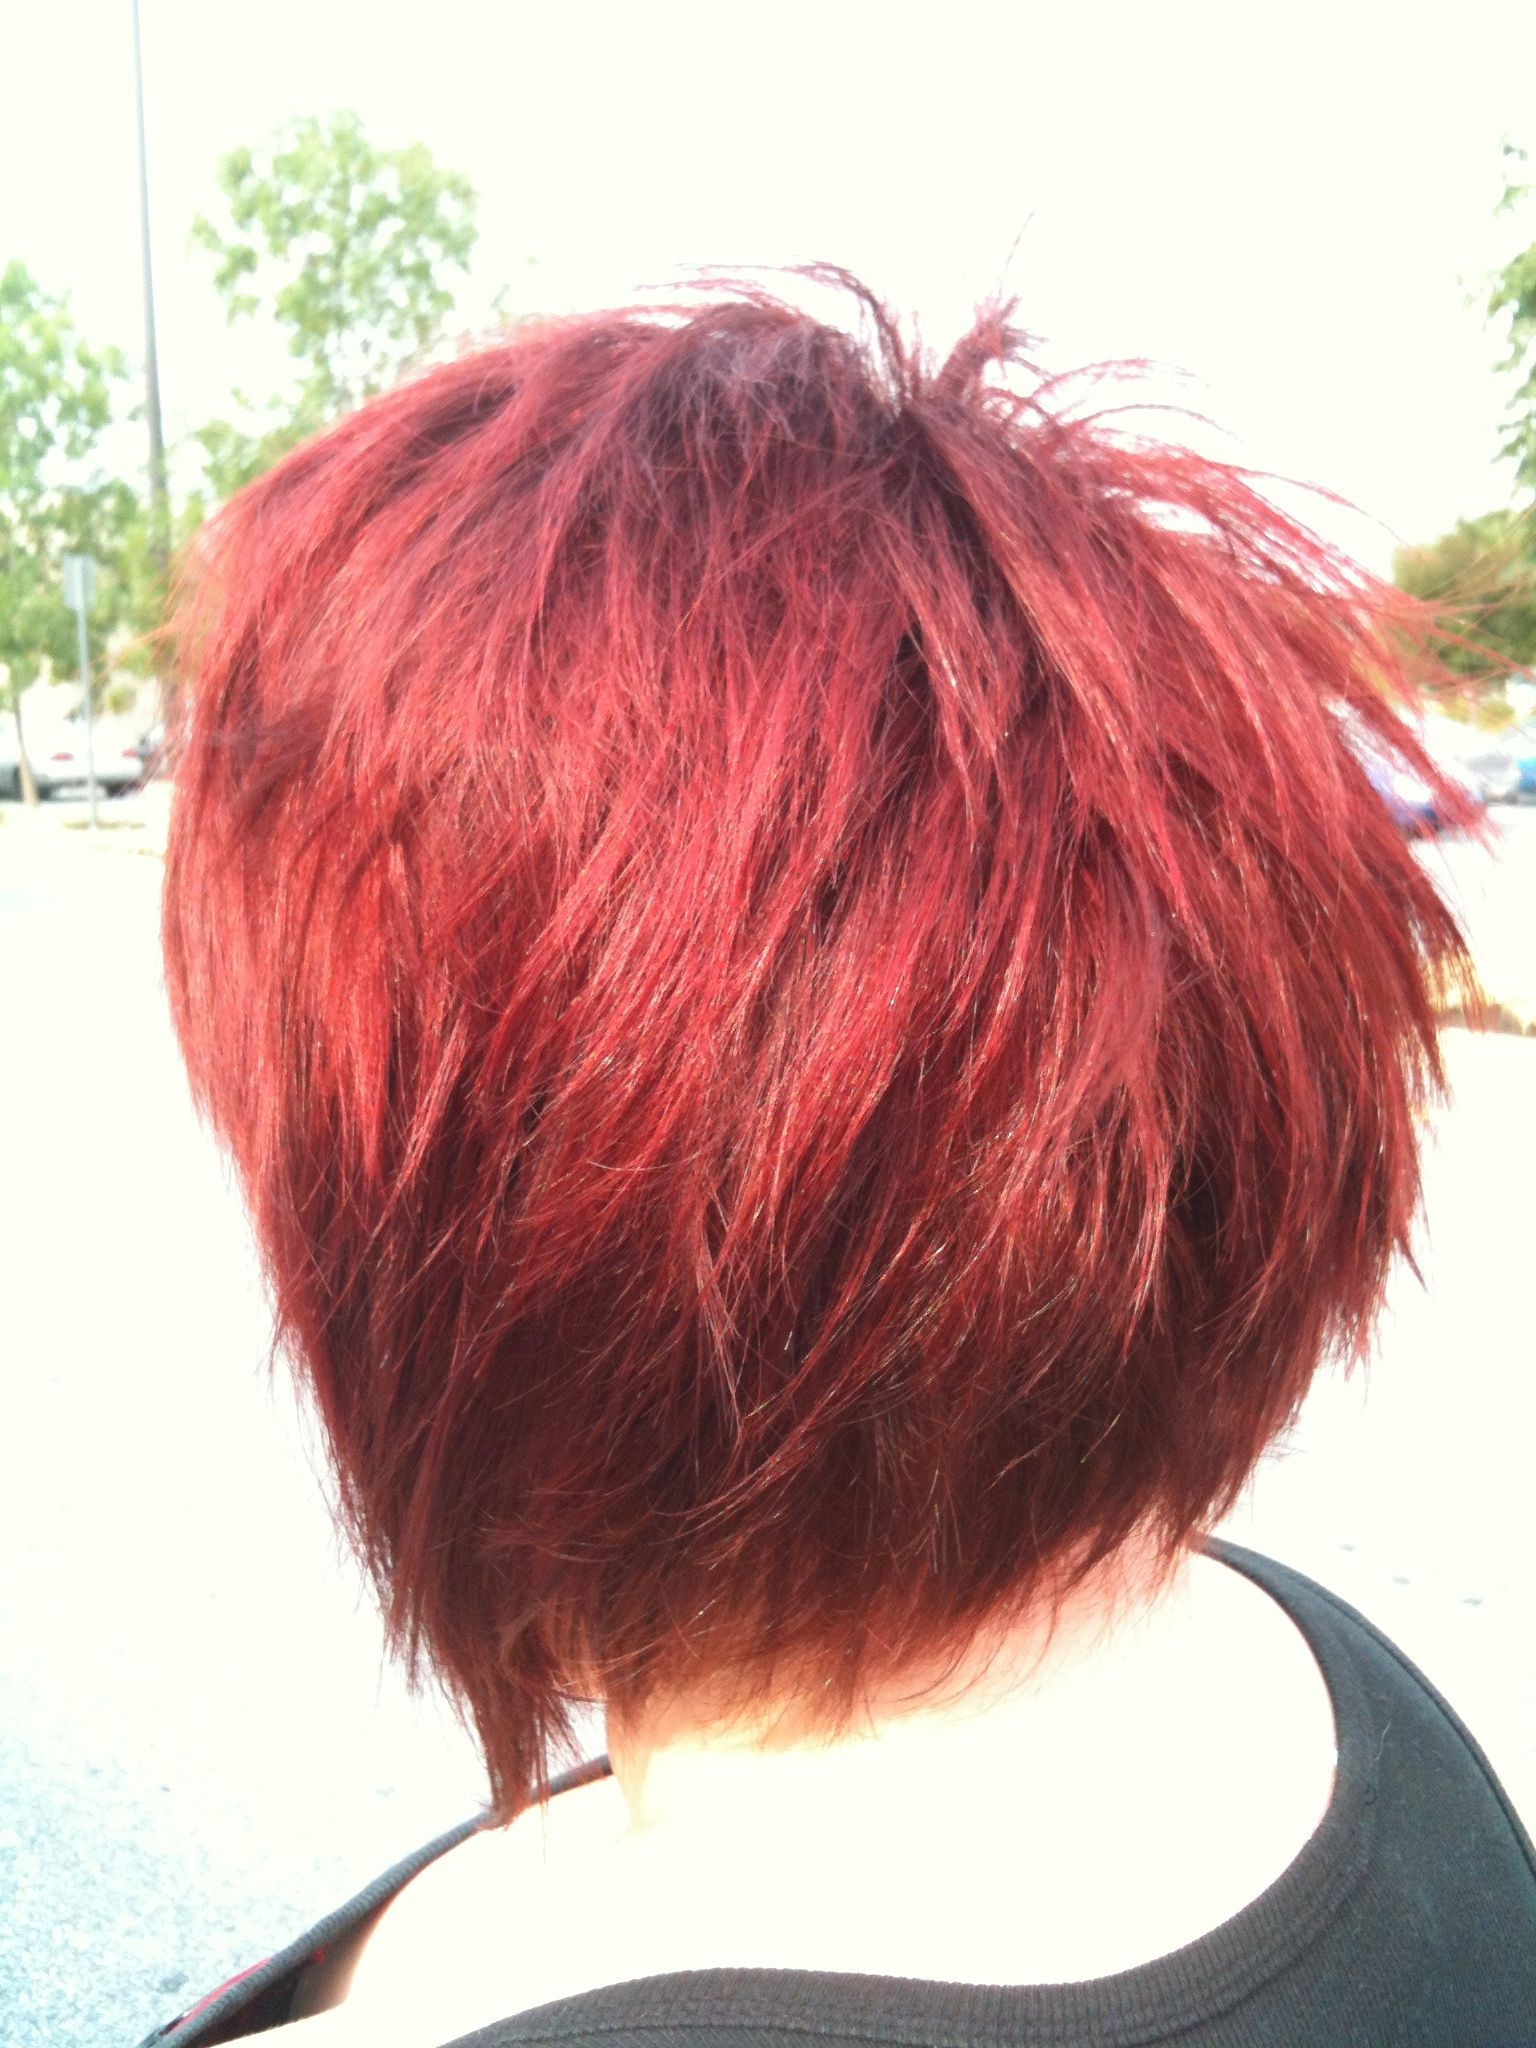 Bright Red Short And Piecy Hair   Hair Styles   Pinterest   Red Within Bright Red Short Hairstyles (View 5 of 25)